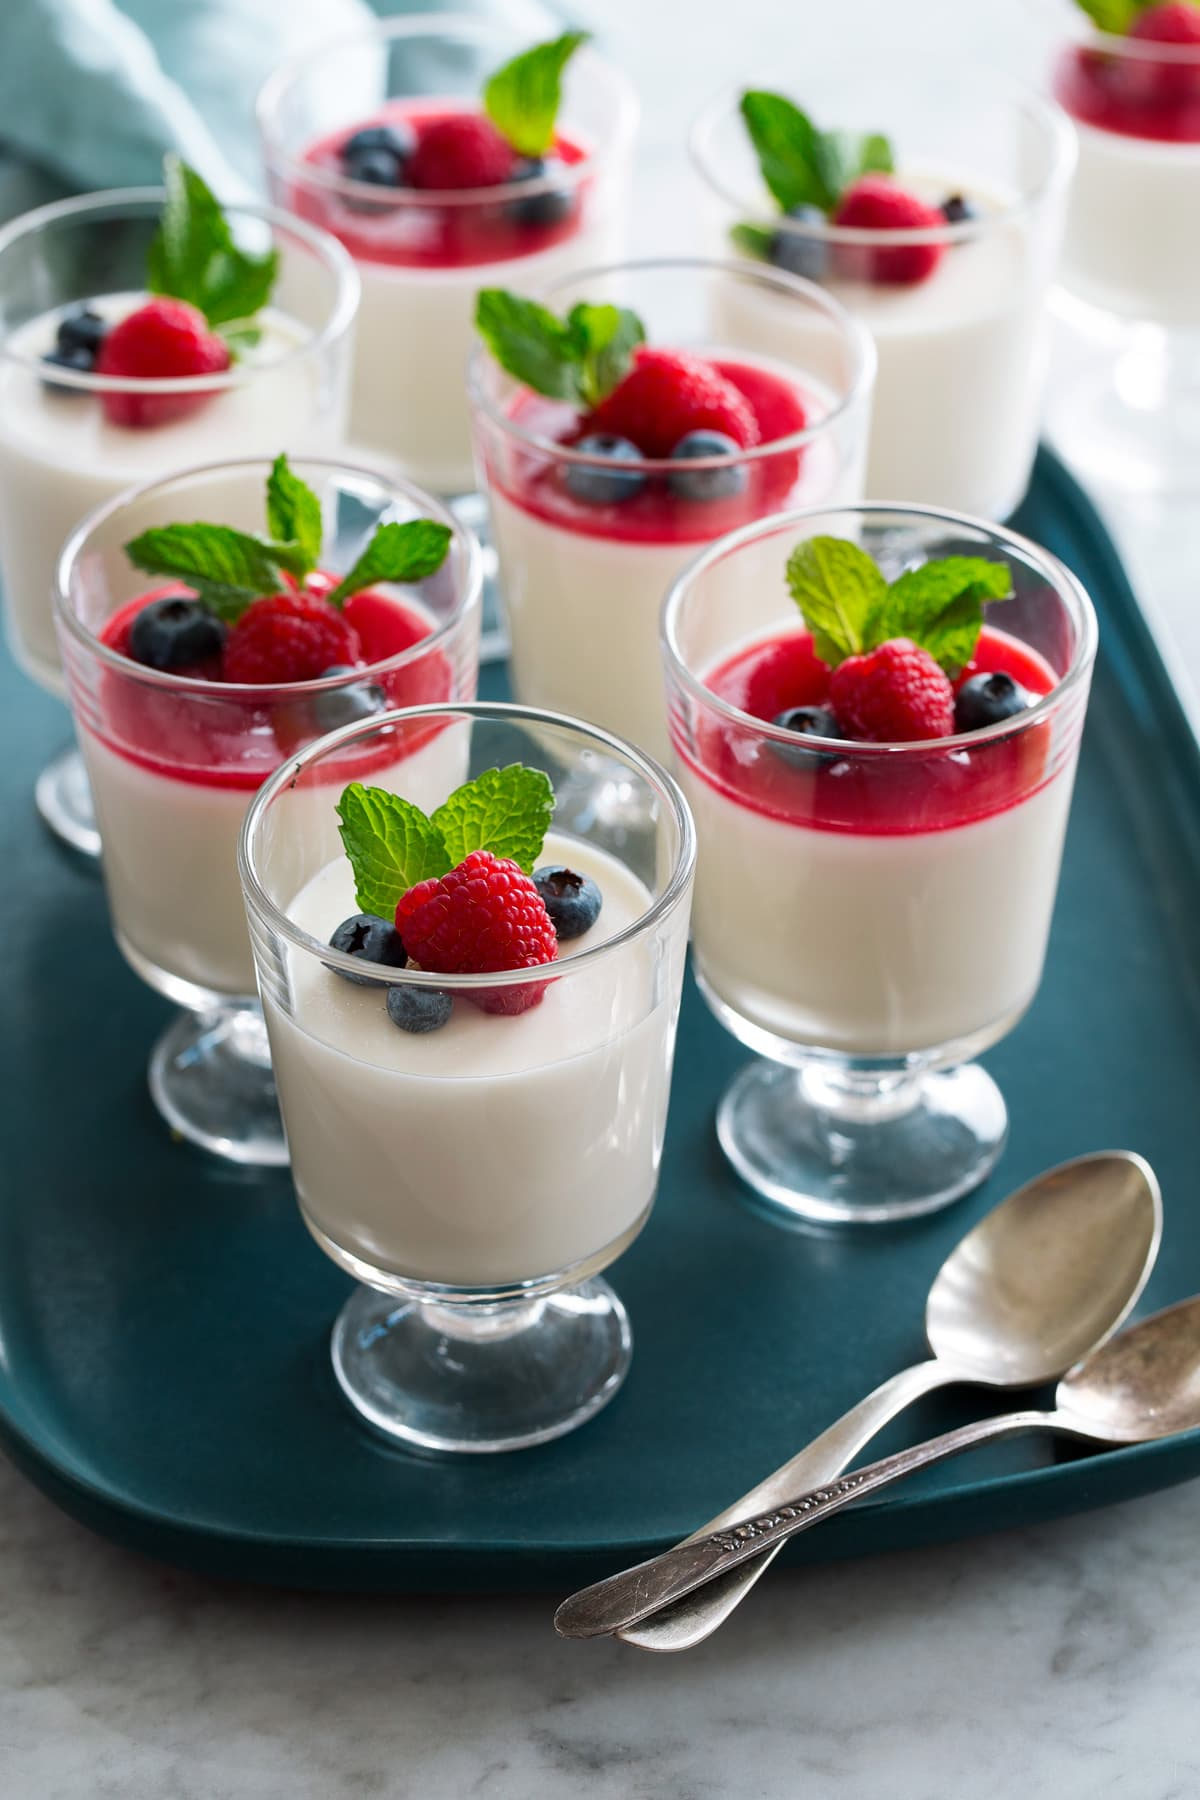 Photo: Eight servings of panna cotta shown in glass dessert cups.